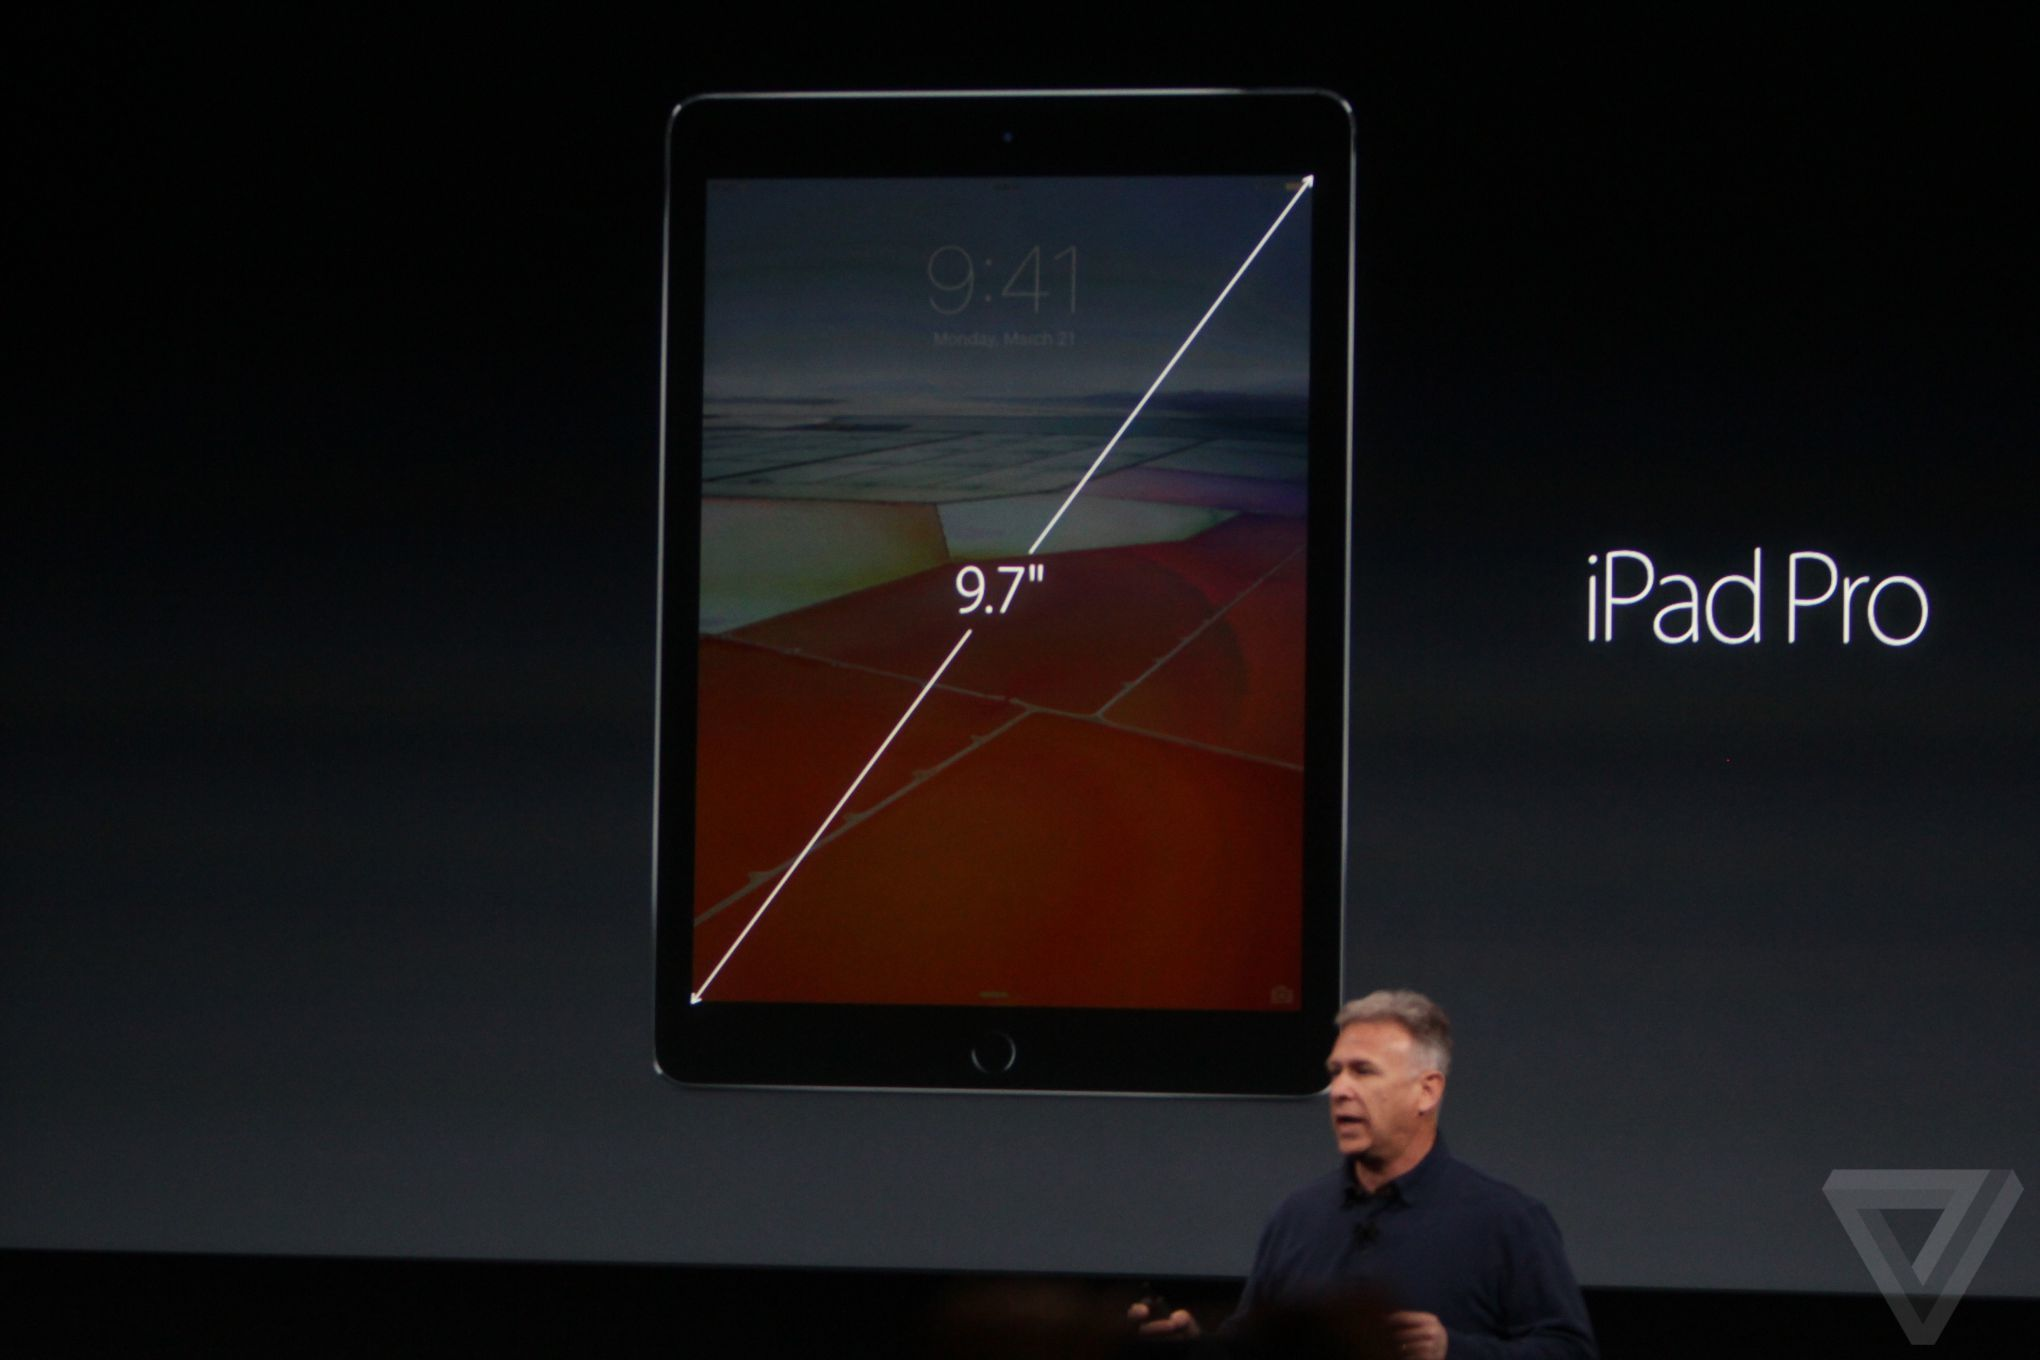 https://syllabus.vox-cdn.com/uploads/photo/image/22747/apple-iphone-se-ipad-pro-event-verge-406.jpg